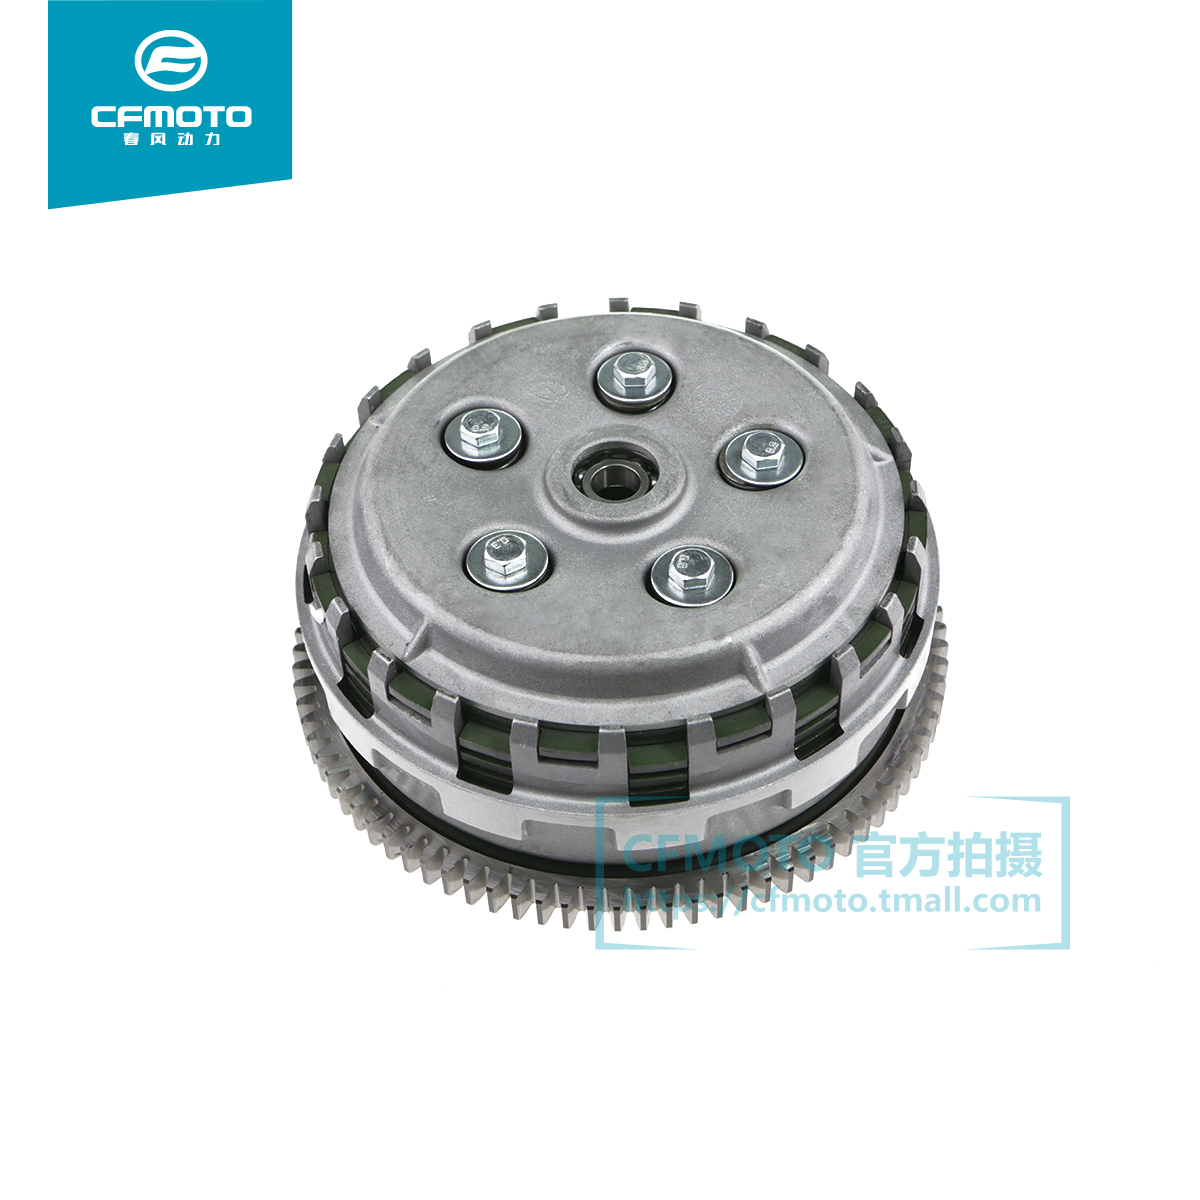 Cfmoto spring power cf650tr/cf650nk motorcycle parts clutch assembly